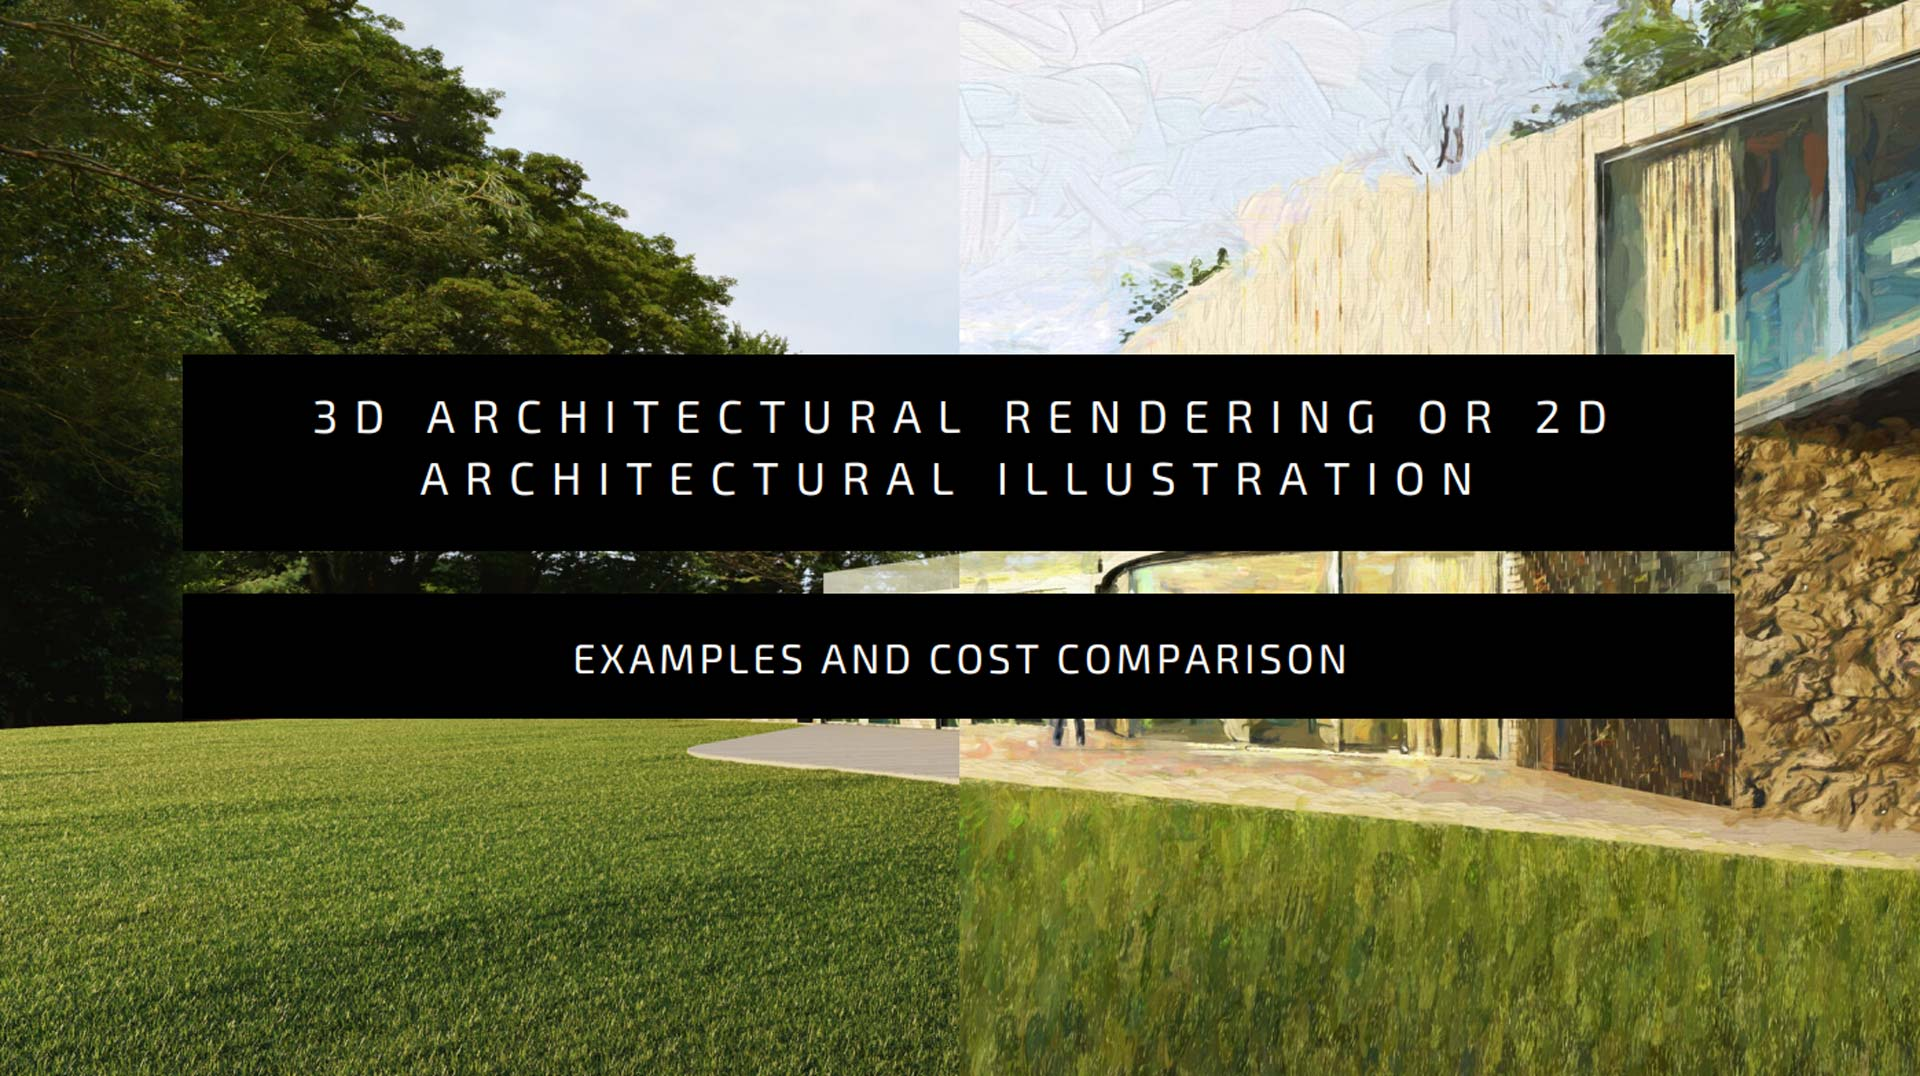 Architectural Renderings or 2D Architectural Illustration [examples]